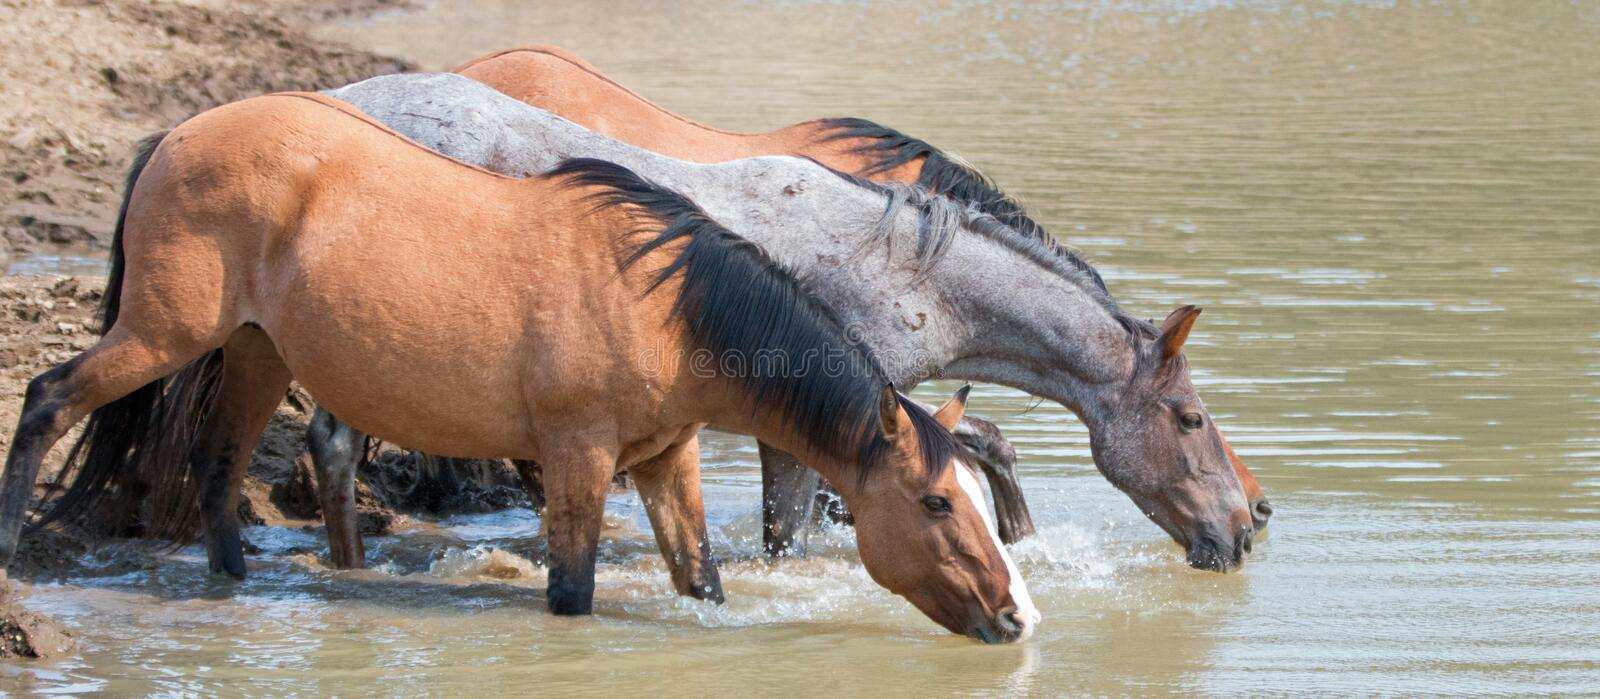 Dun Bucksin mare drinking water with herd small band of wild horses at the waterhole in the Pryor Mountains Wild Horse Range in stock photo